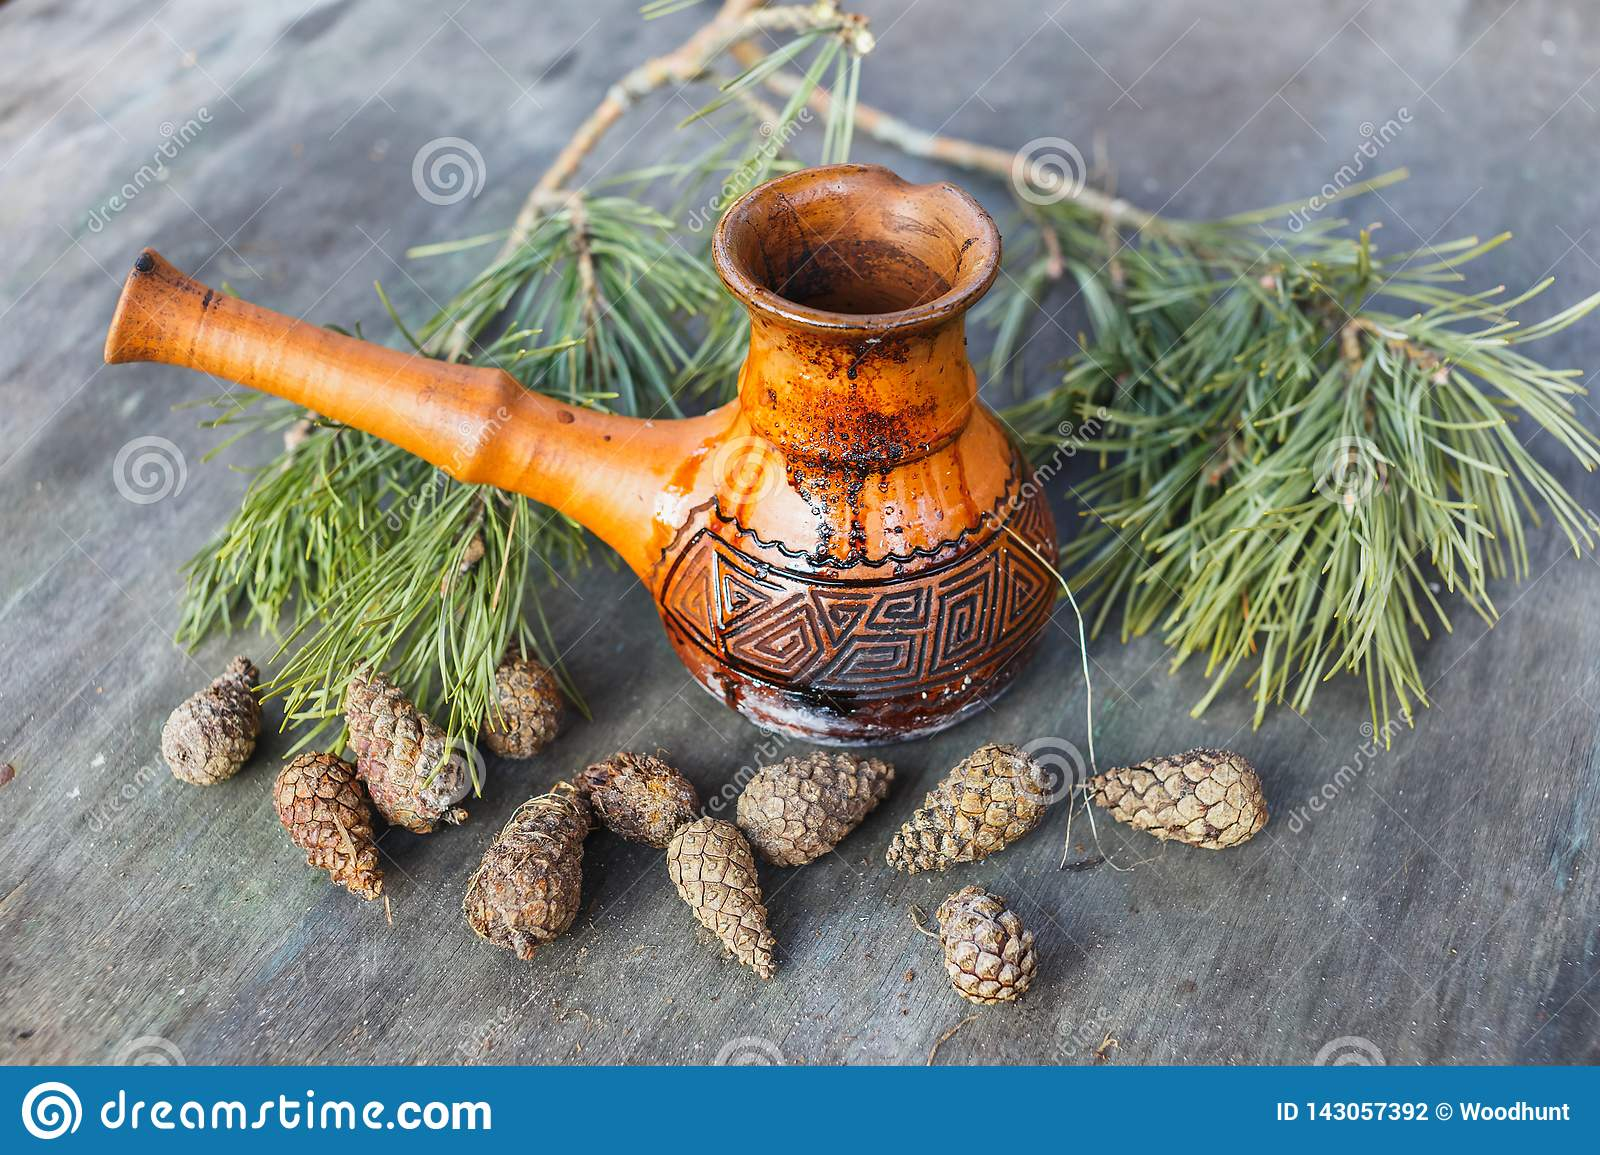 Clay Turkish coffee pot on the background of a gray wooden table